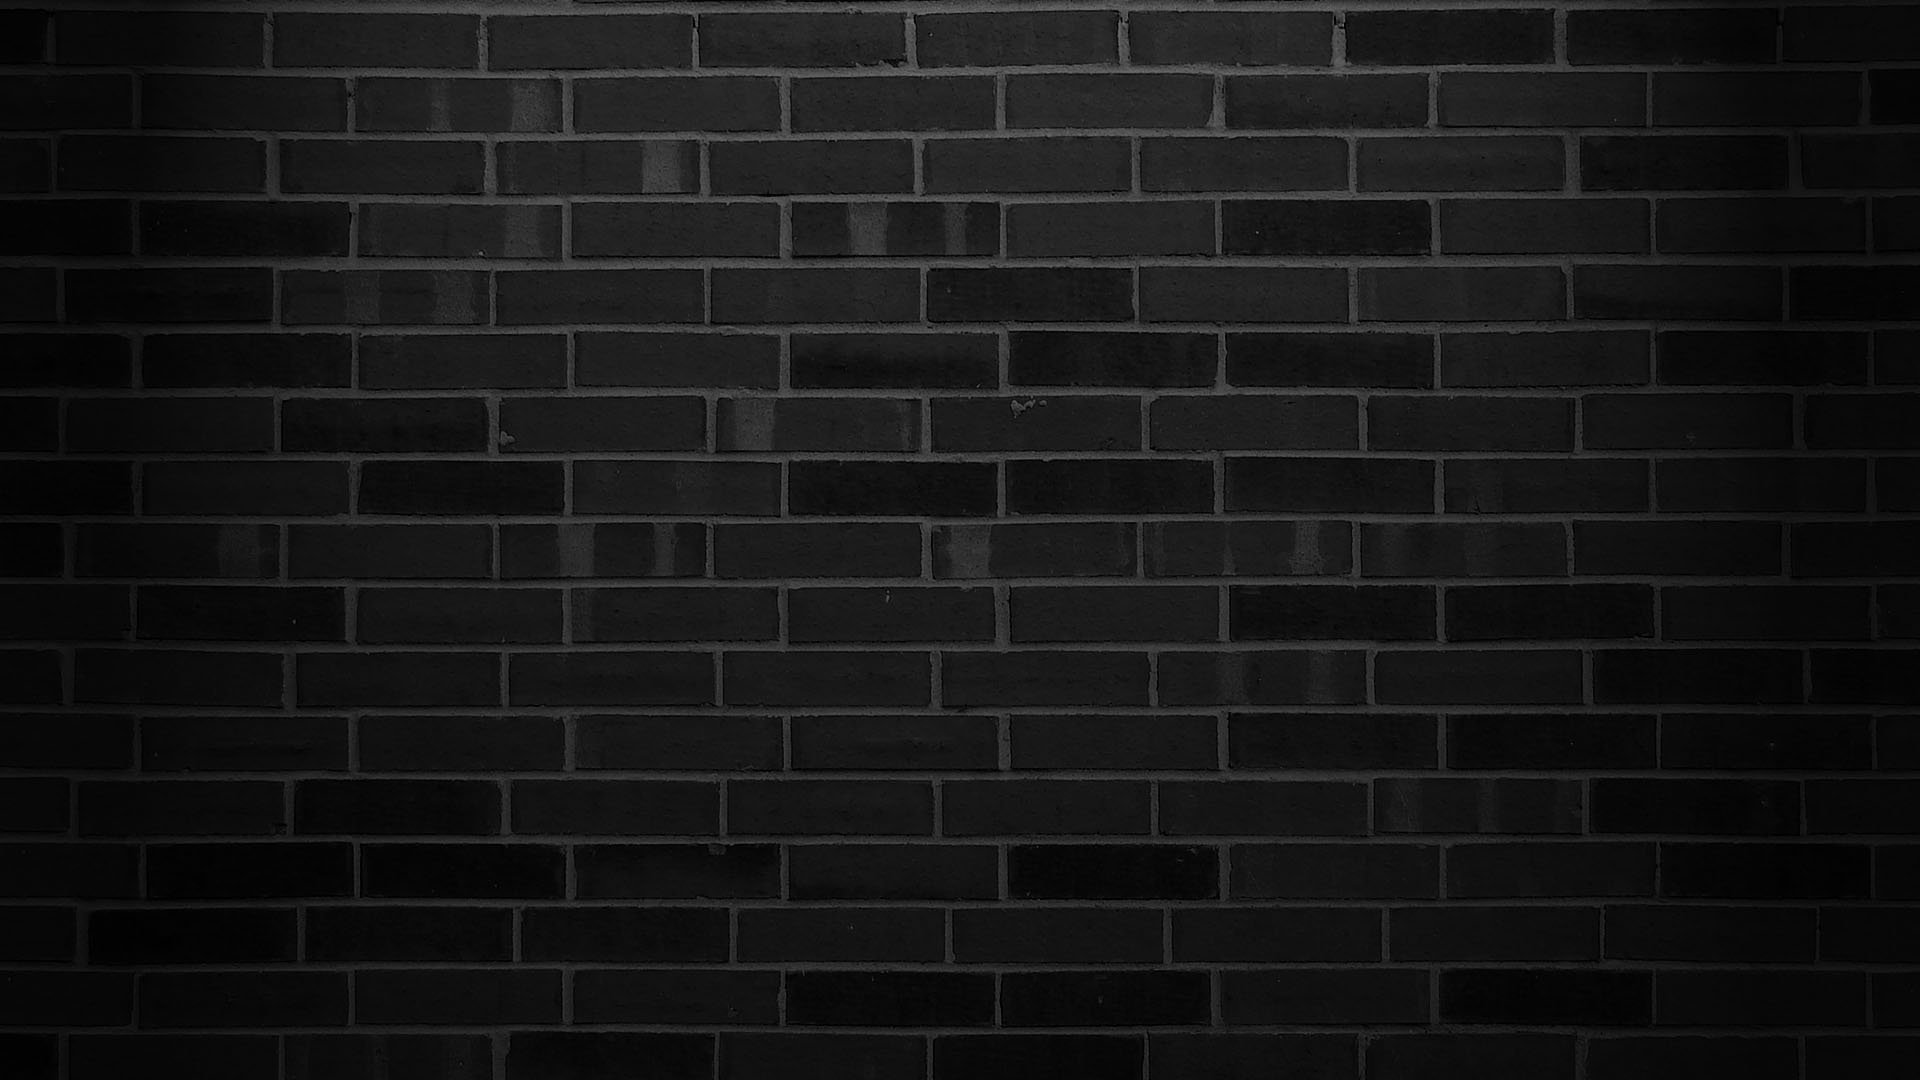 brick bricks pattern wallpaper